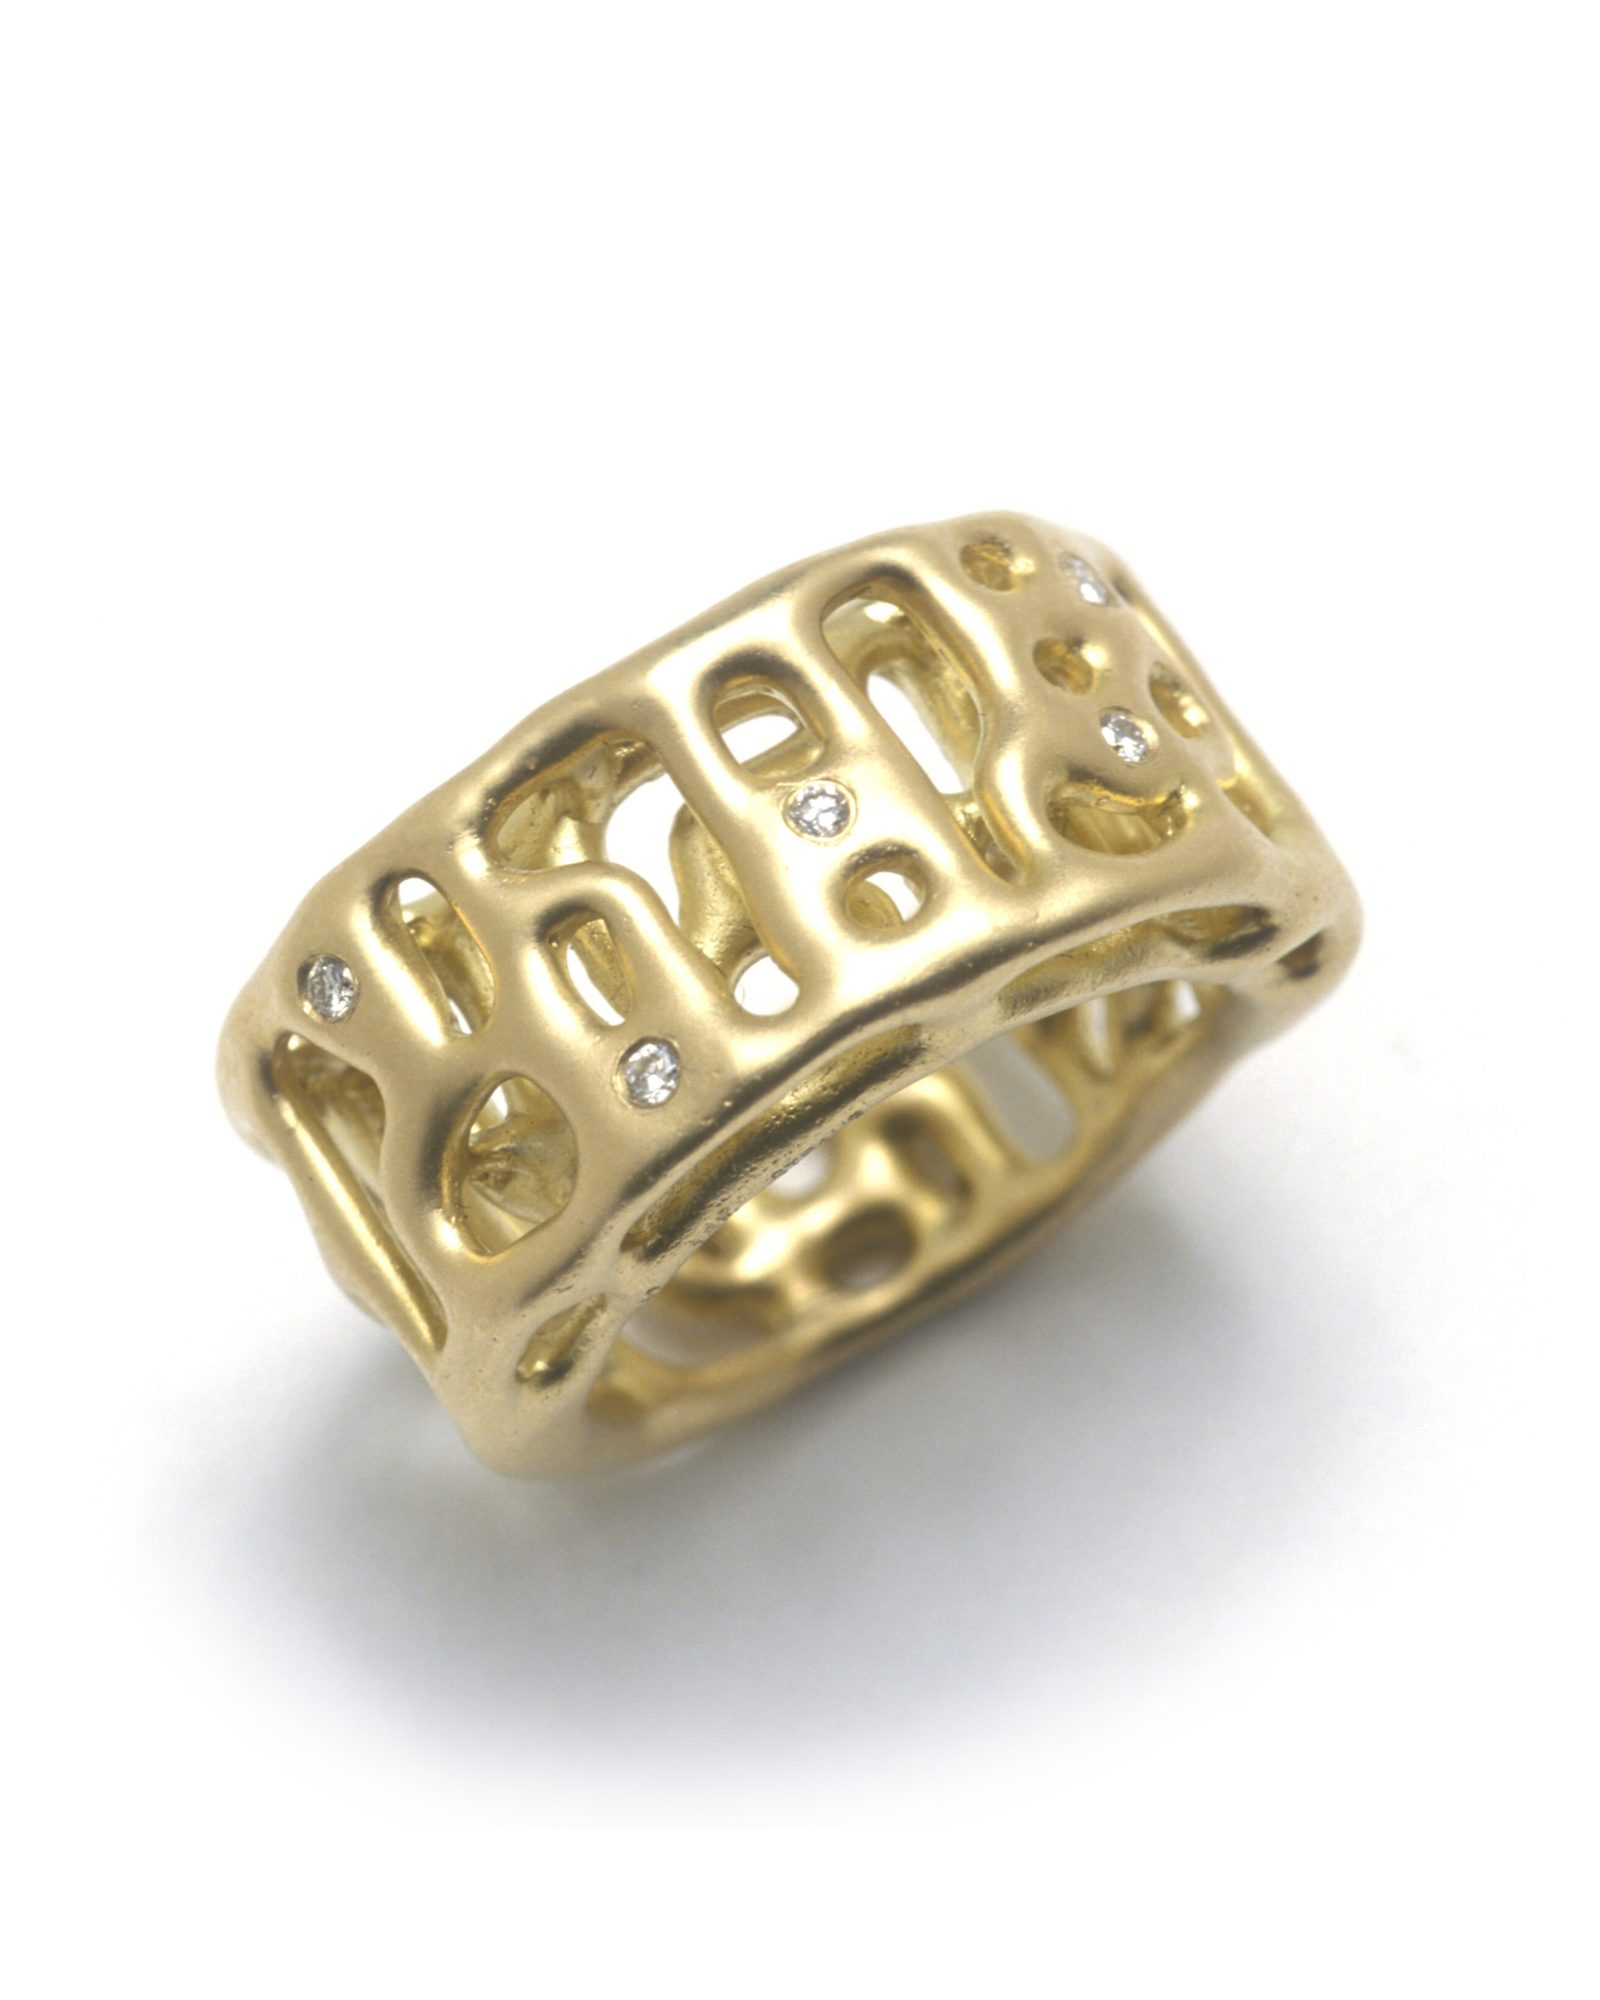 eternity-bands-thick-becca-straus-0515.jpg